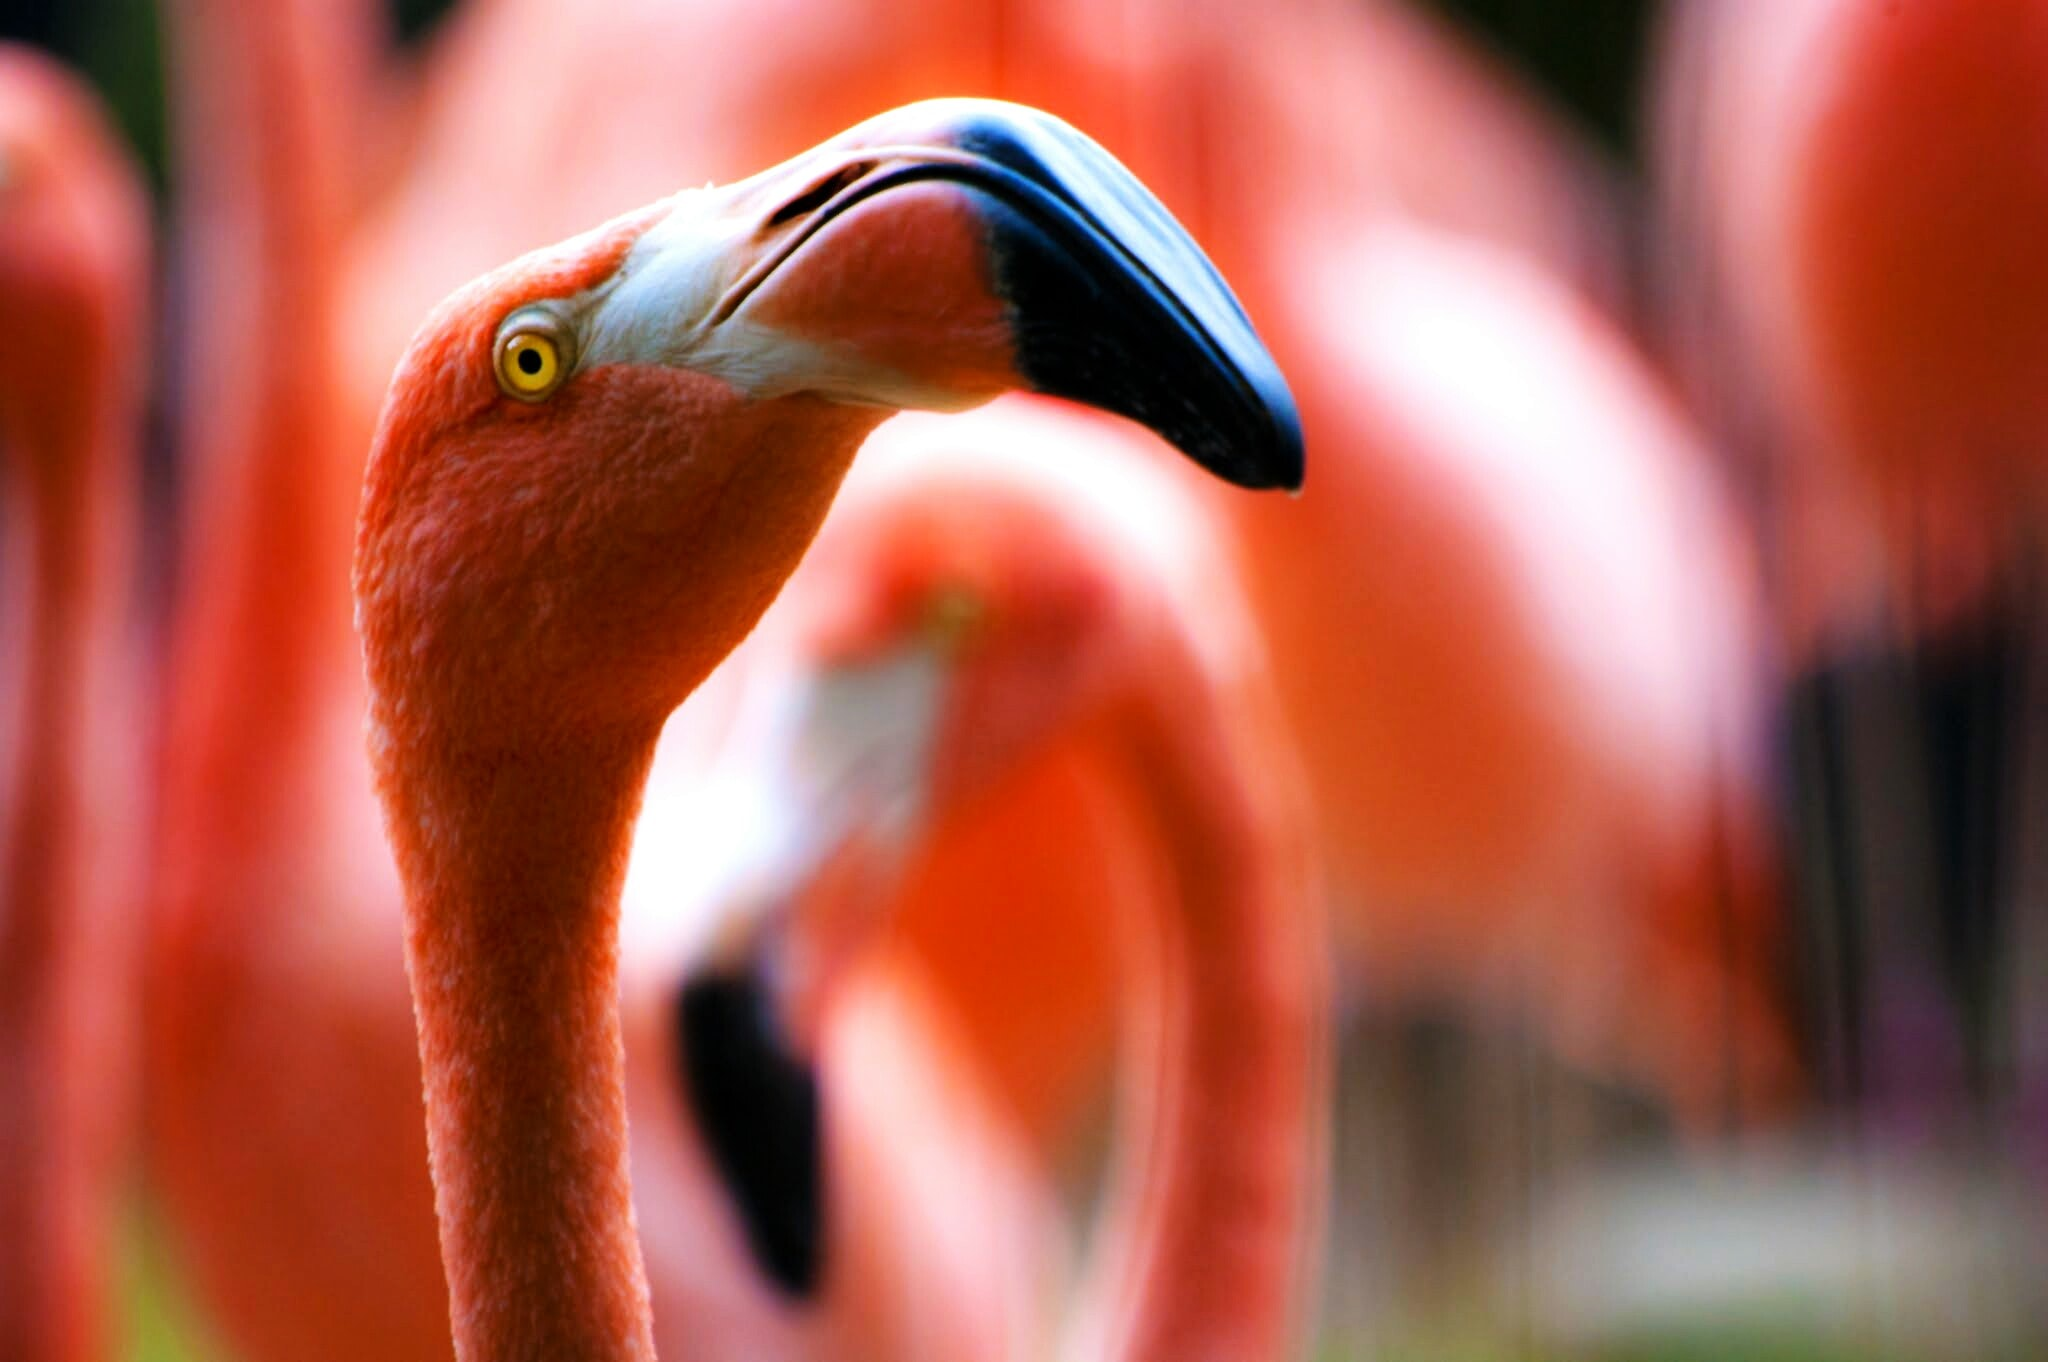 Macro of a Flamingo looking up among a group of flamingos in the background